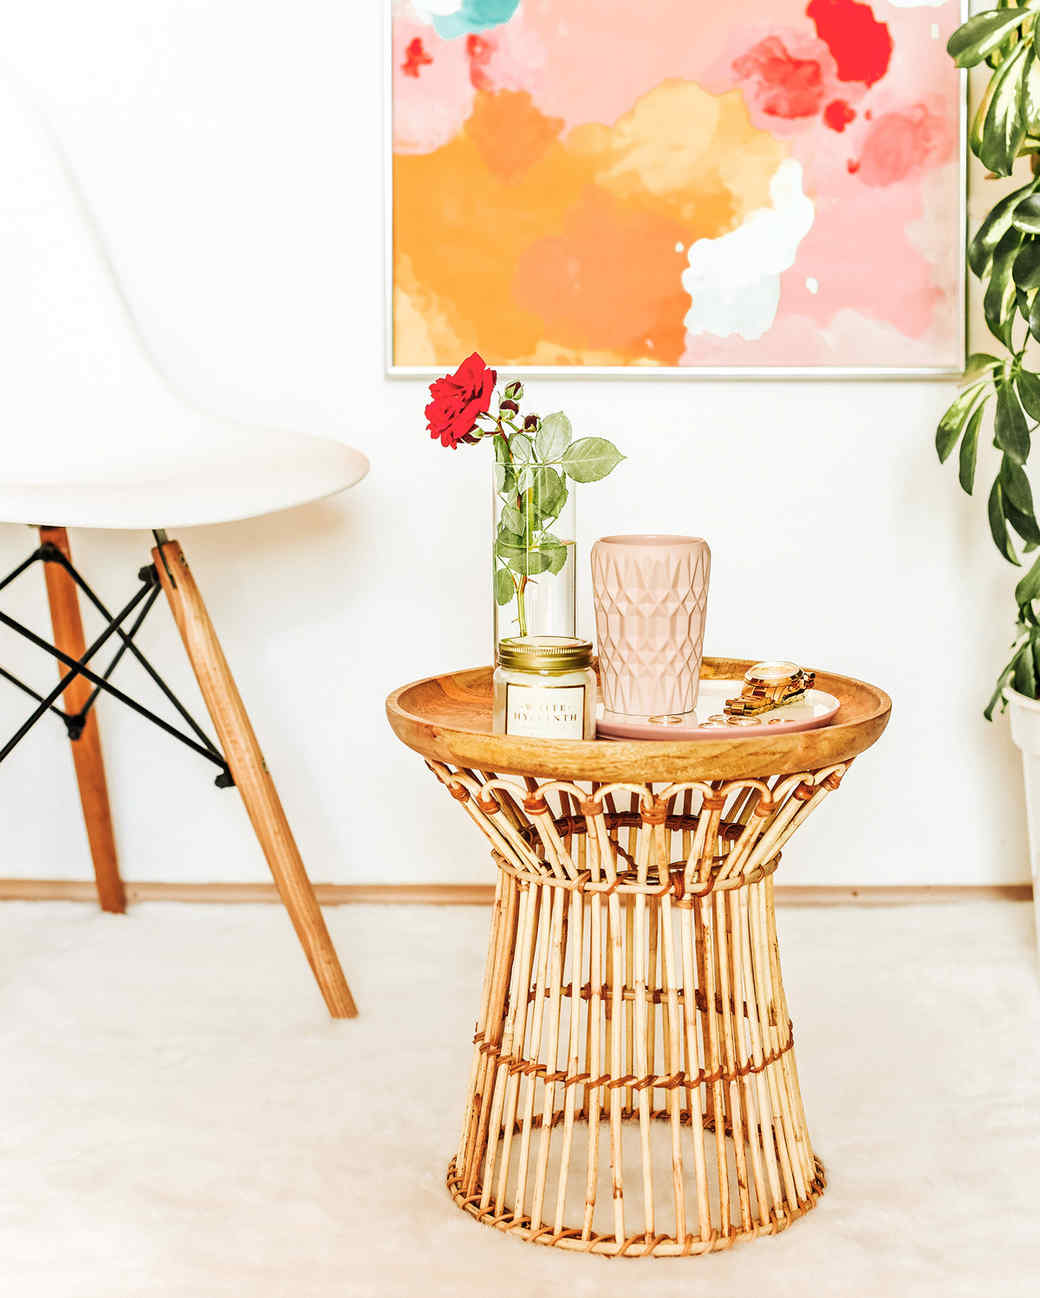 diy rattan side table martha stewart vert outdoor accent completed white chair amish oak end tables small round antique dining extension pottery barn decor nautical style modern